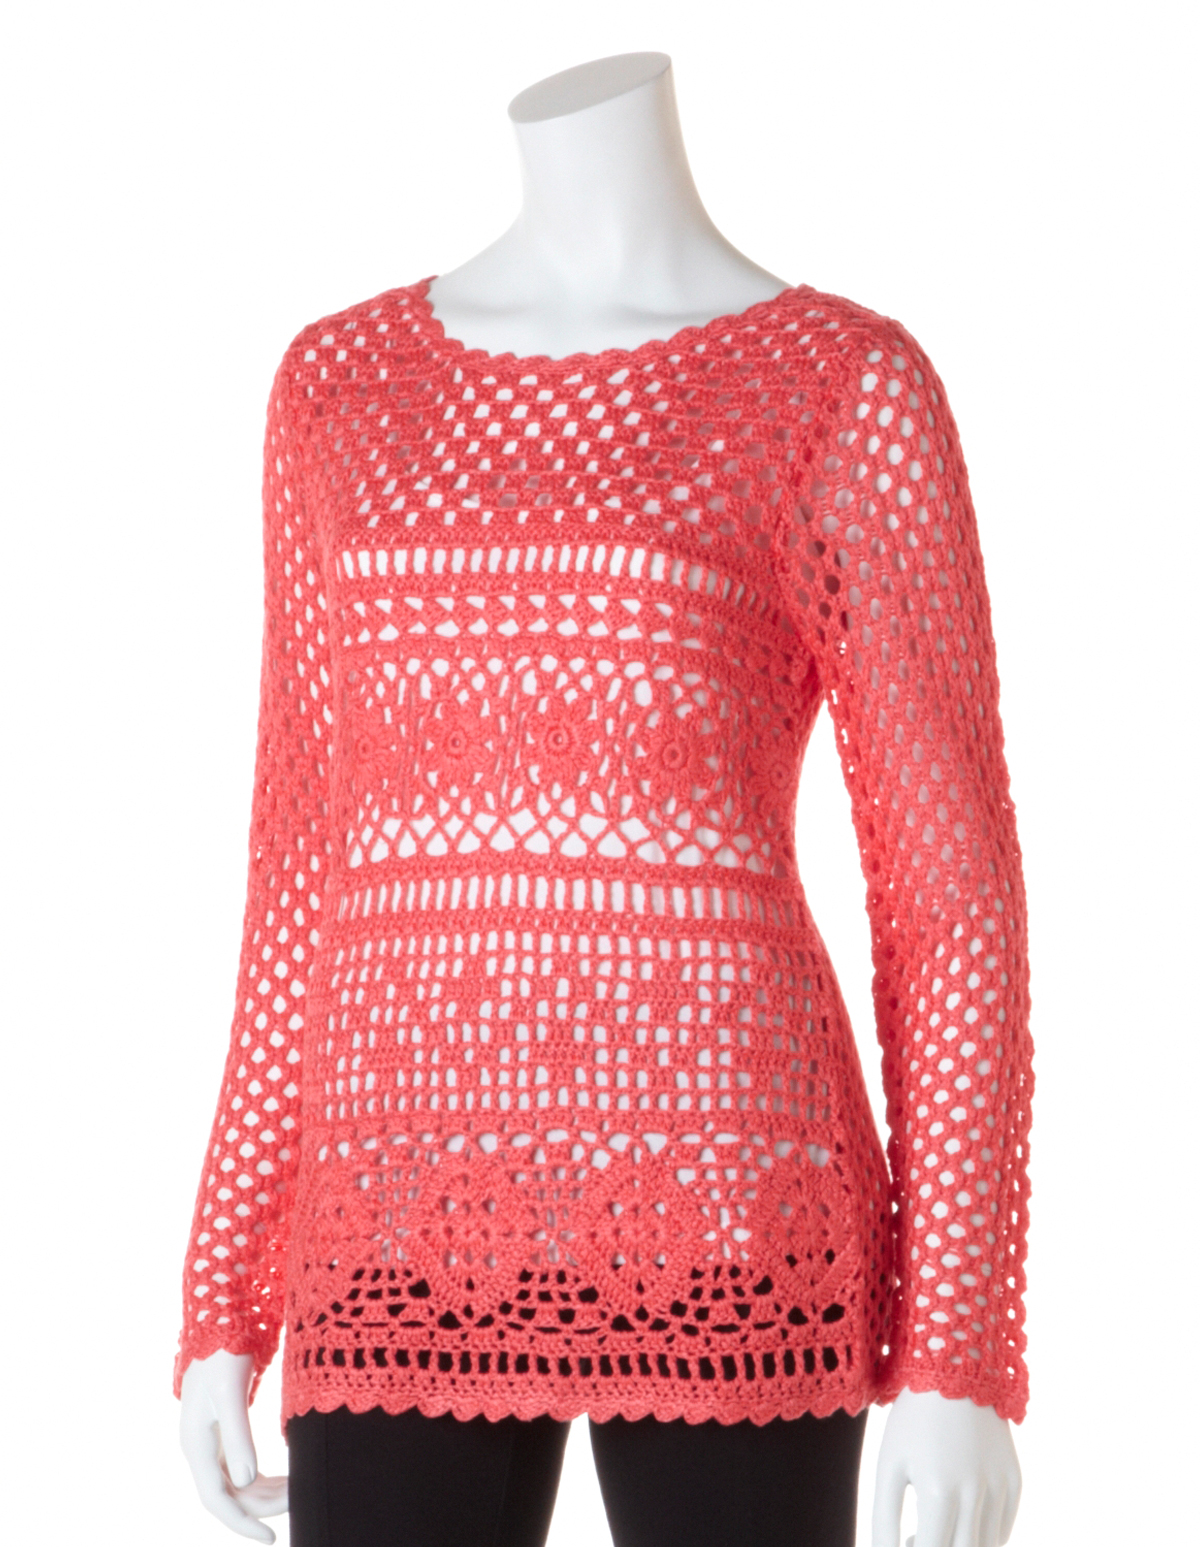 Papaya Crochet Pullover Sweater | Cleo